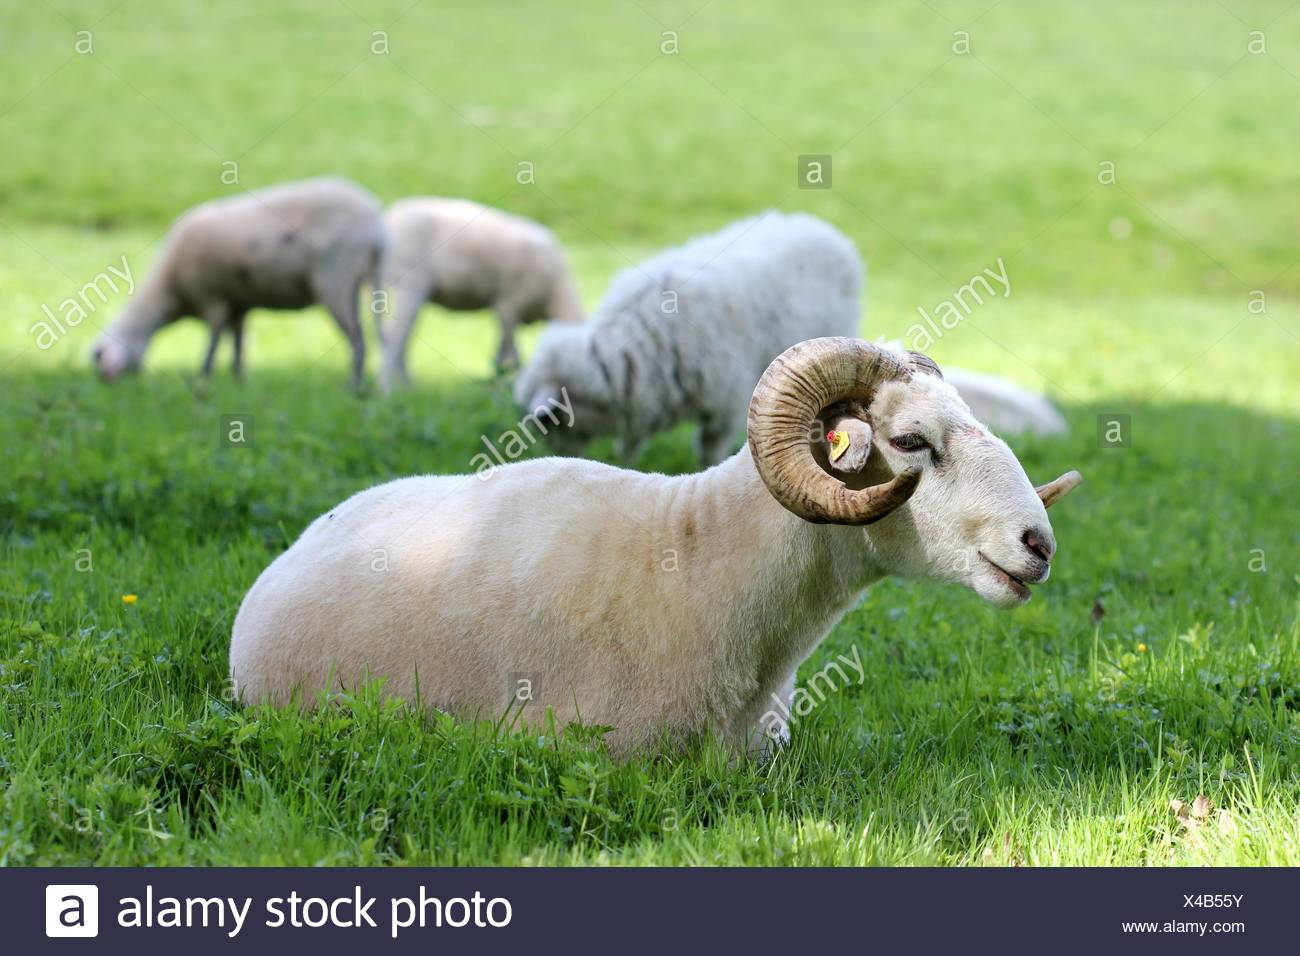 blank, european, caucasian, sheep, wool, spring, milk, cornets, twisted, shorn, - Stock Image